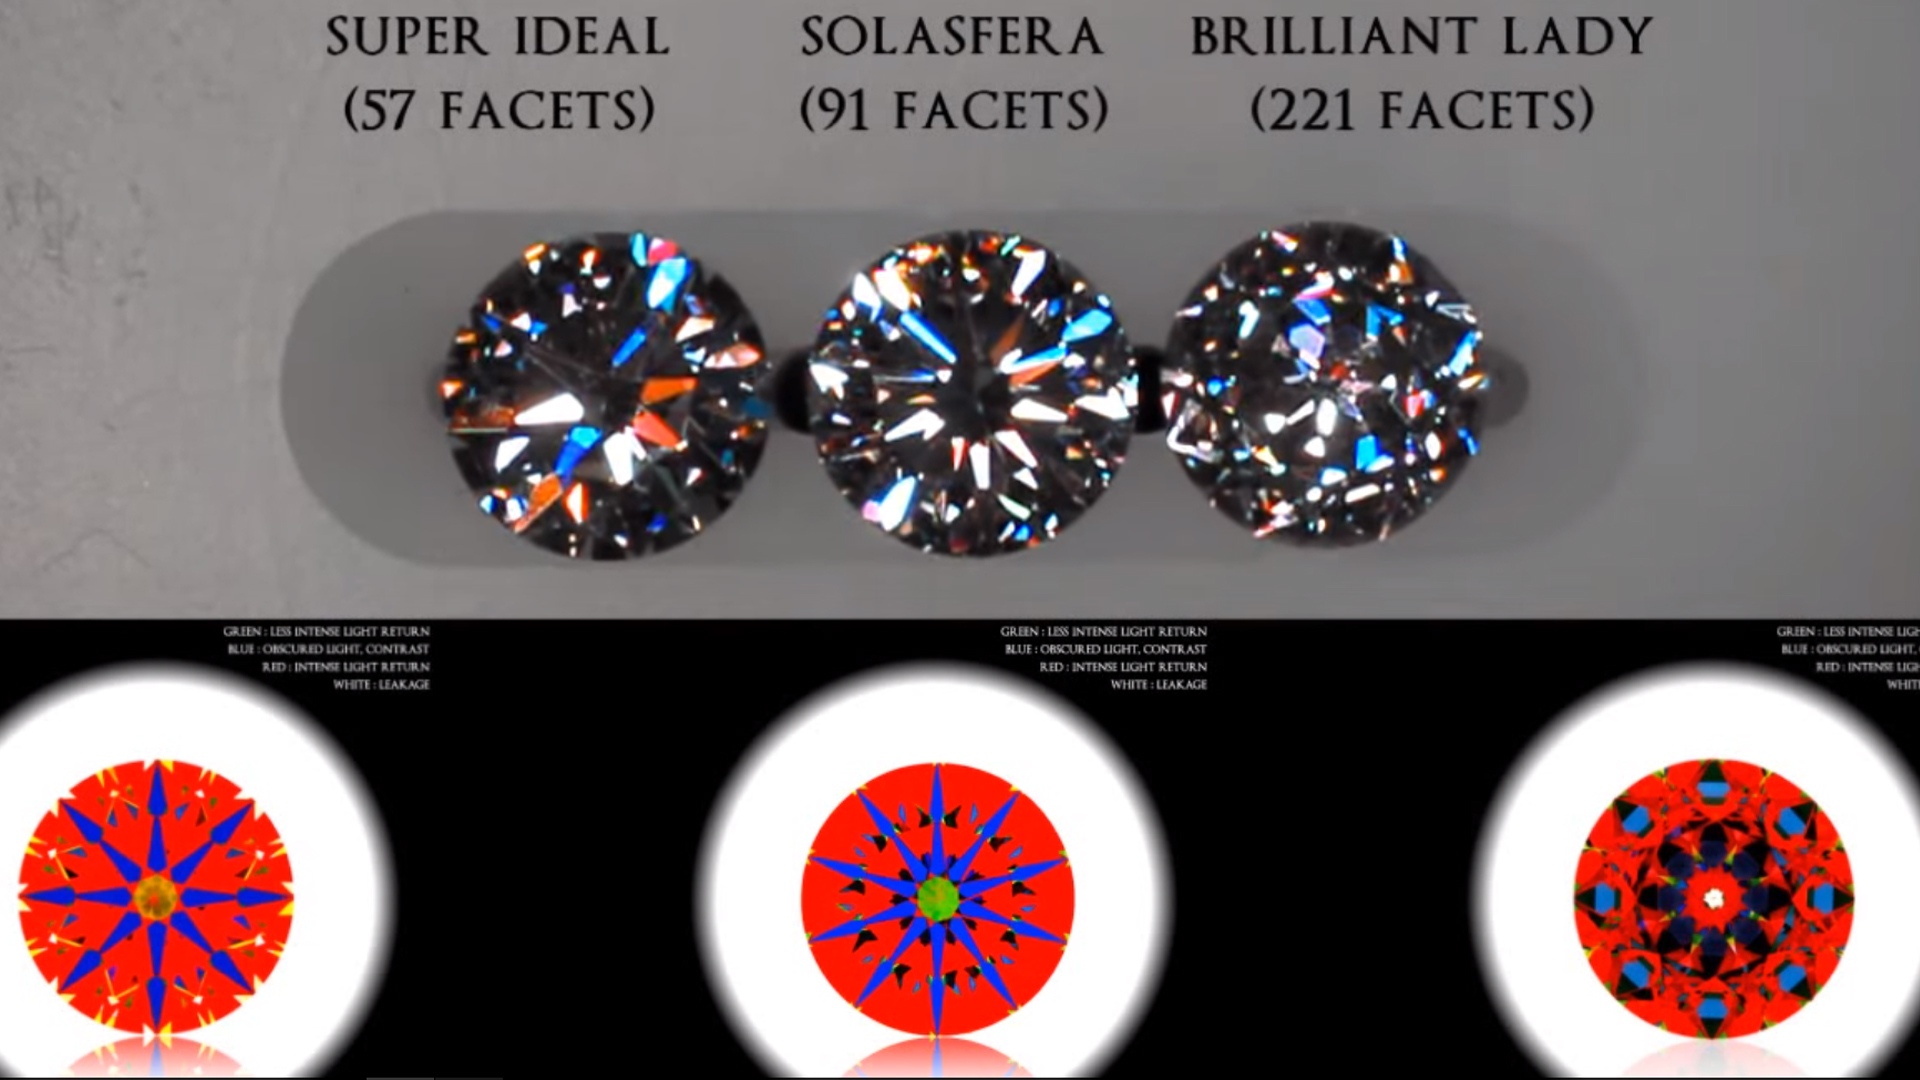 JannPaul Educaton: Higher Faceted Diamonds vs Lower Faceted Diamonds